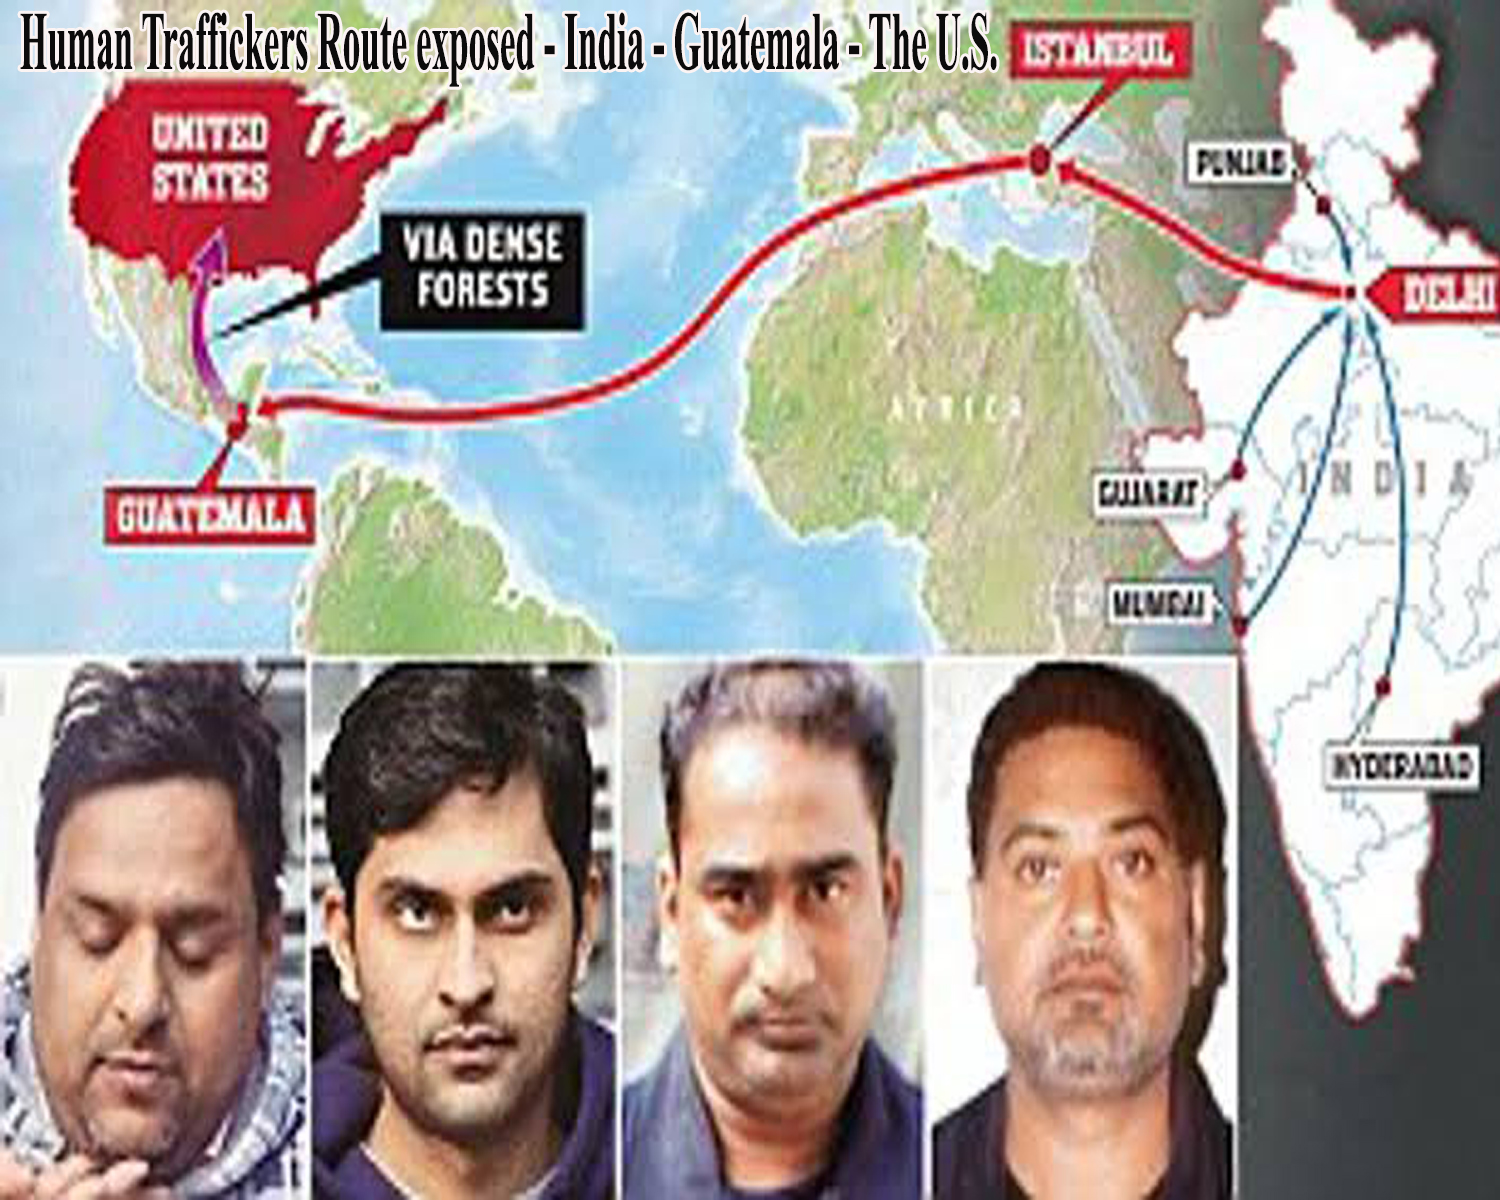 Human Traffickers Route exposed - India - Guatemala - The U.S.